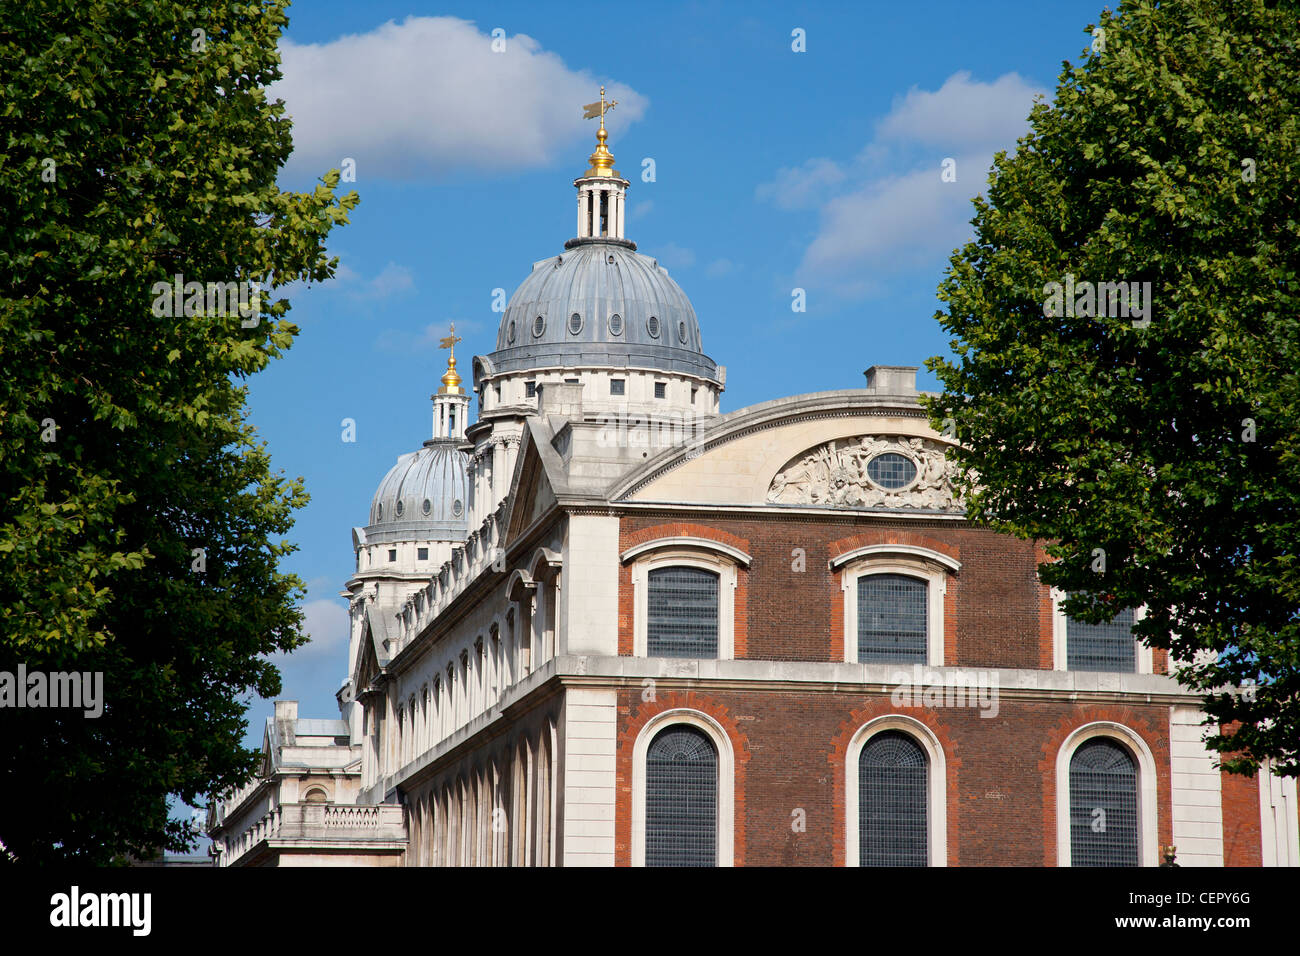 King Charles Court, part of the former Old Royal Naval College, Greenwich. The building is a Scheduled Ancient Monument - Stock Image